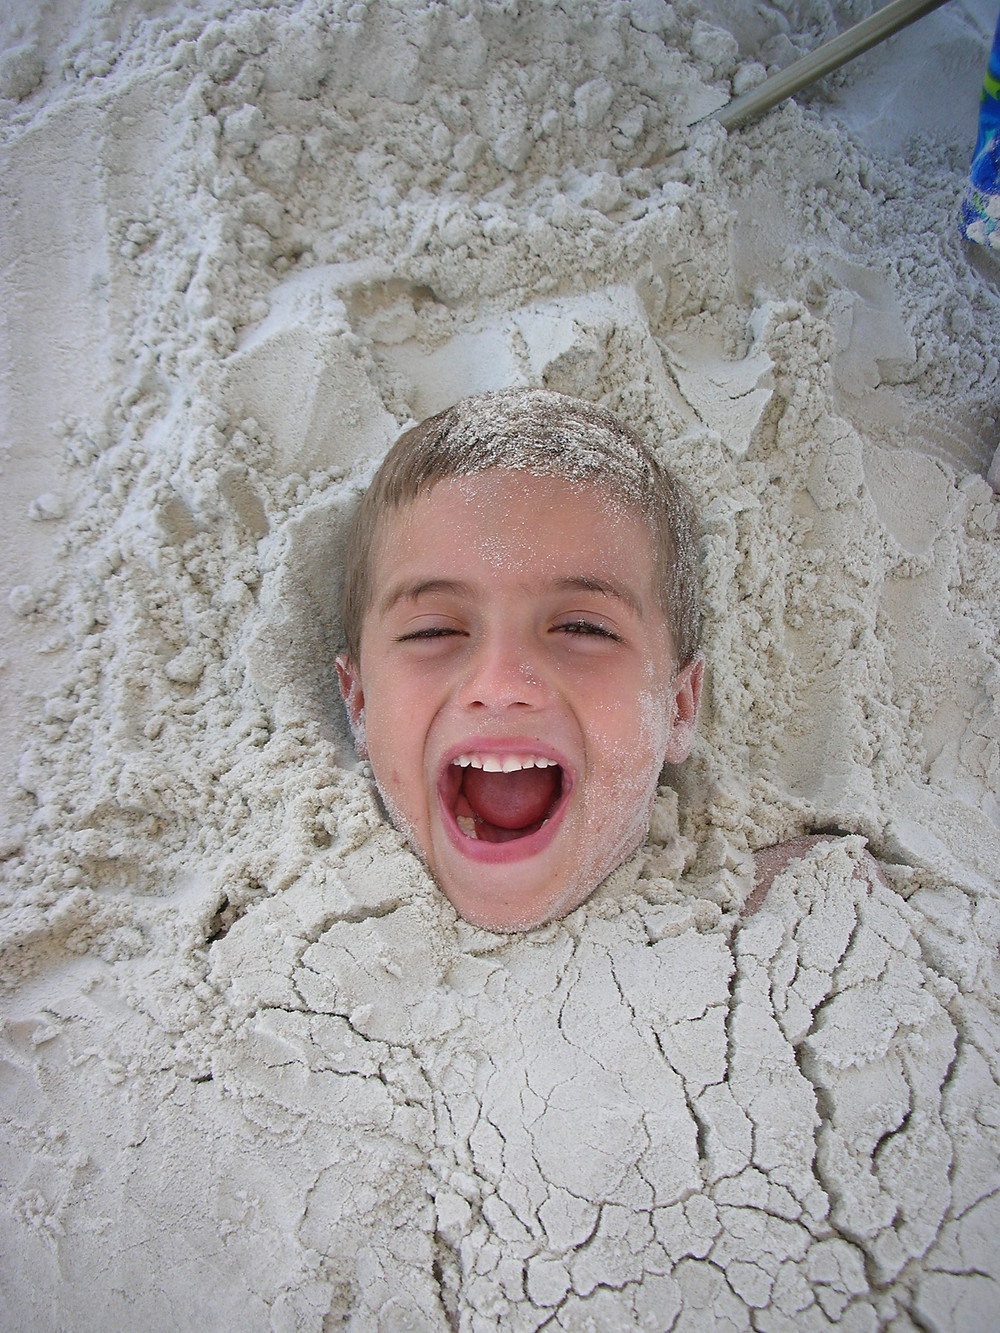 kid buried in sand